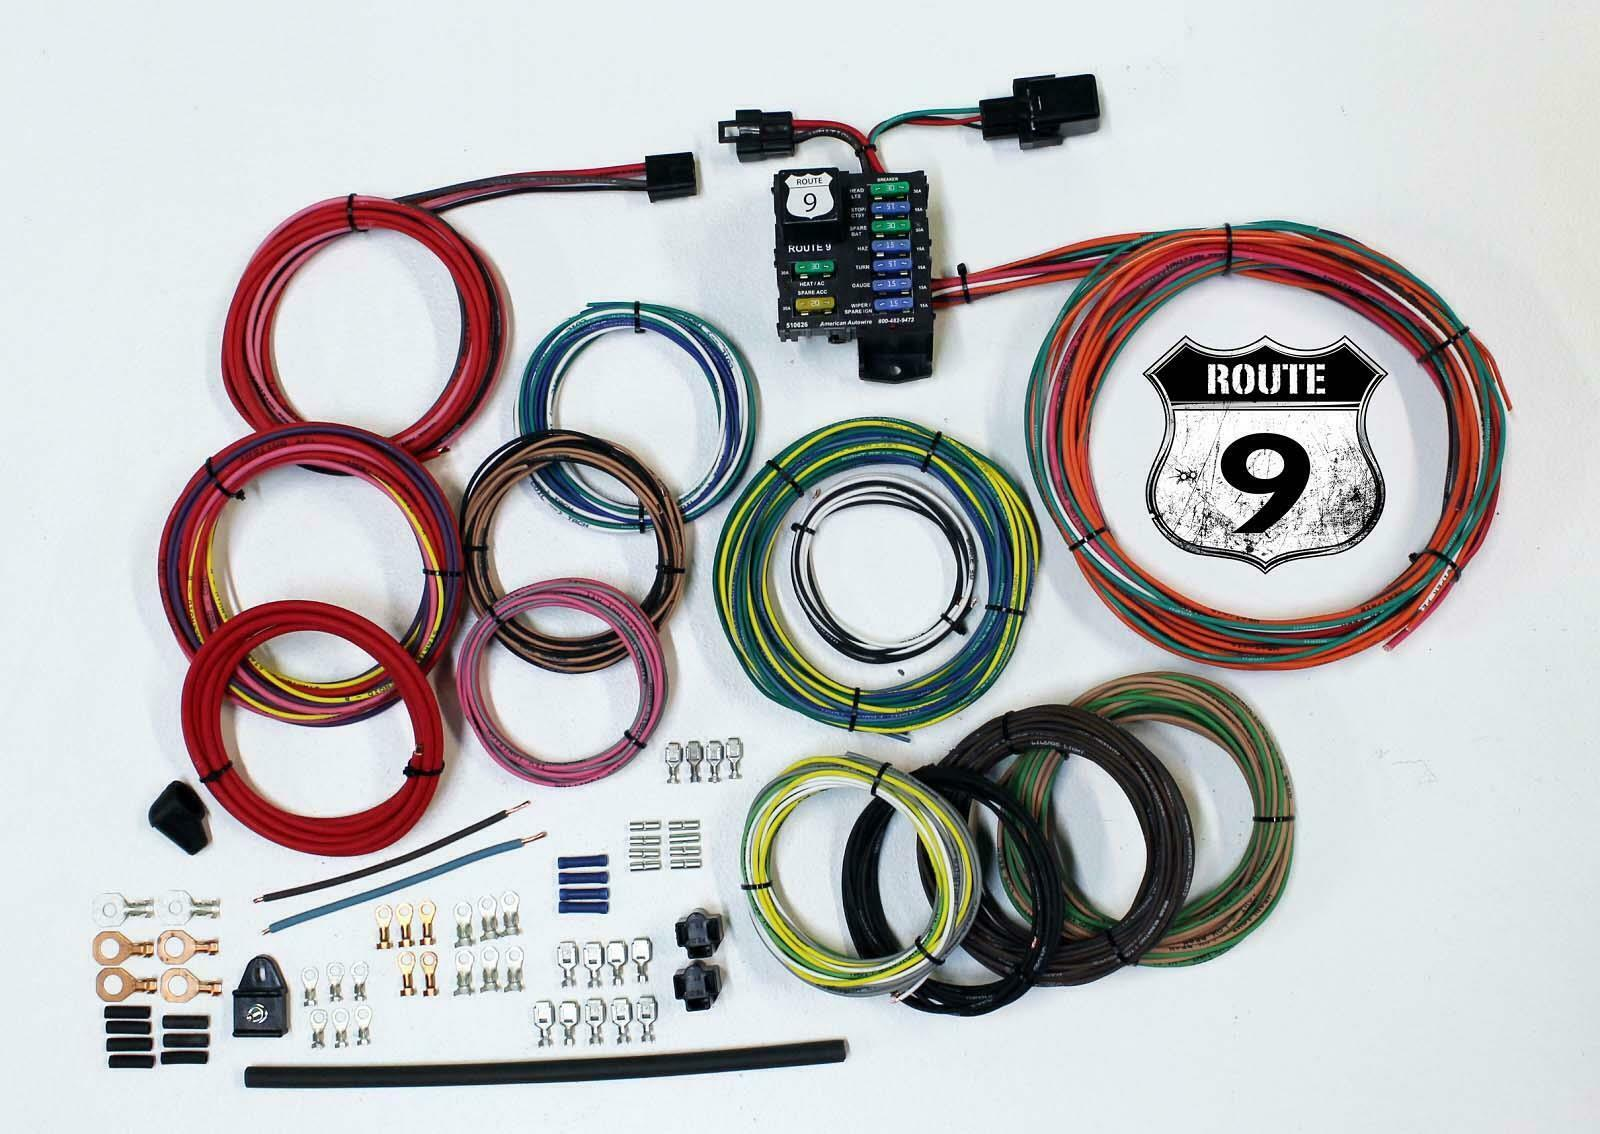 American Auto Wire 510625 Route 9 Universal Wiring Harness Kit Cj3a 1 Of 1only 5 Available